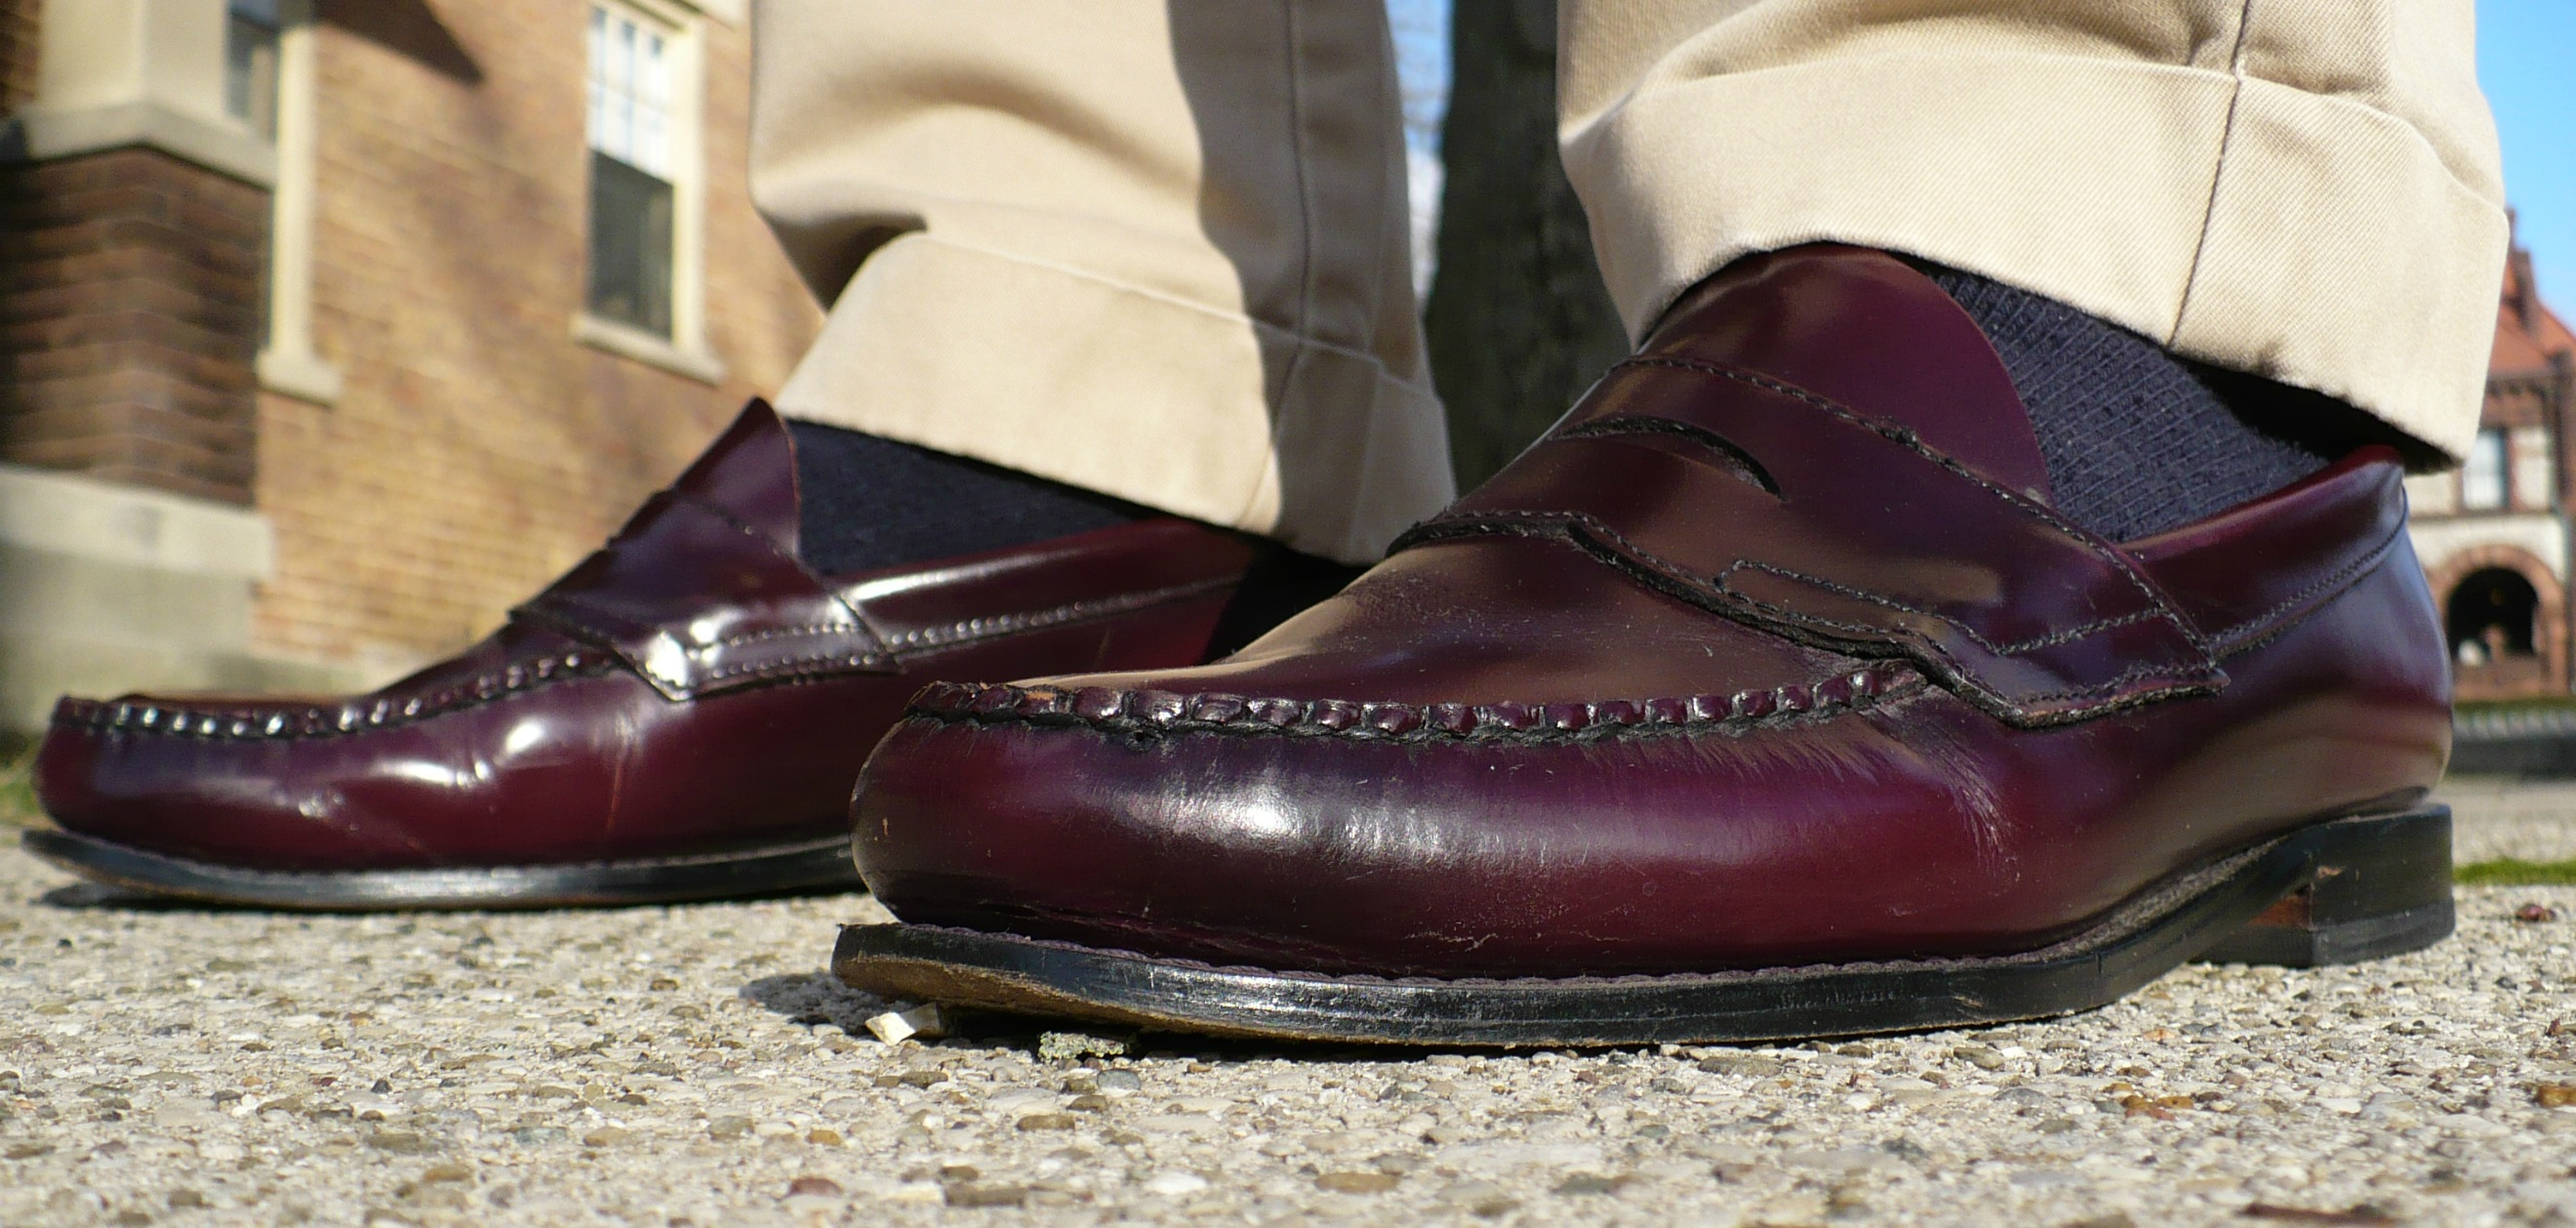 6f6659b6743 Burgundy Bass Weejun Burgundy Bass Weejun Penny Loafer